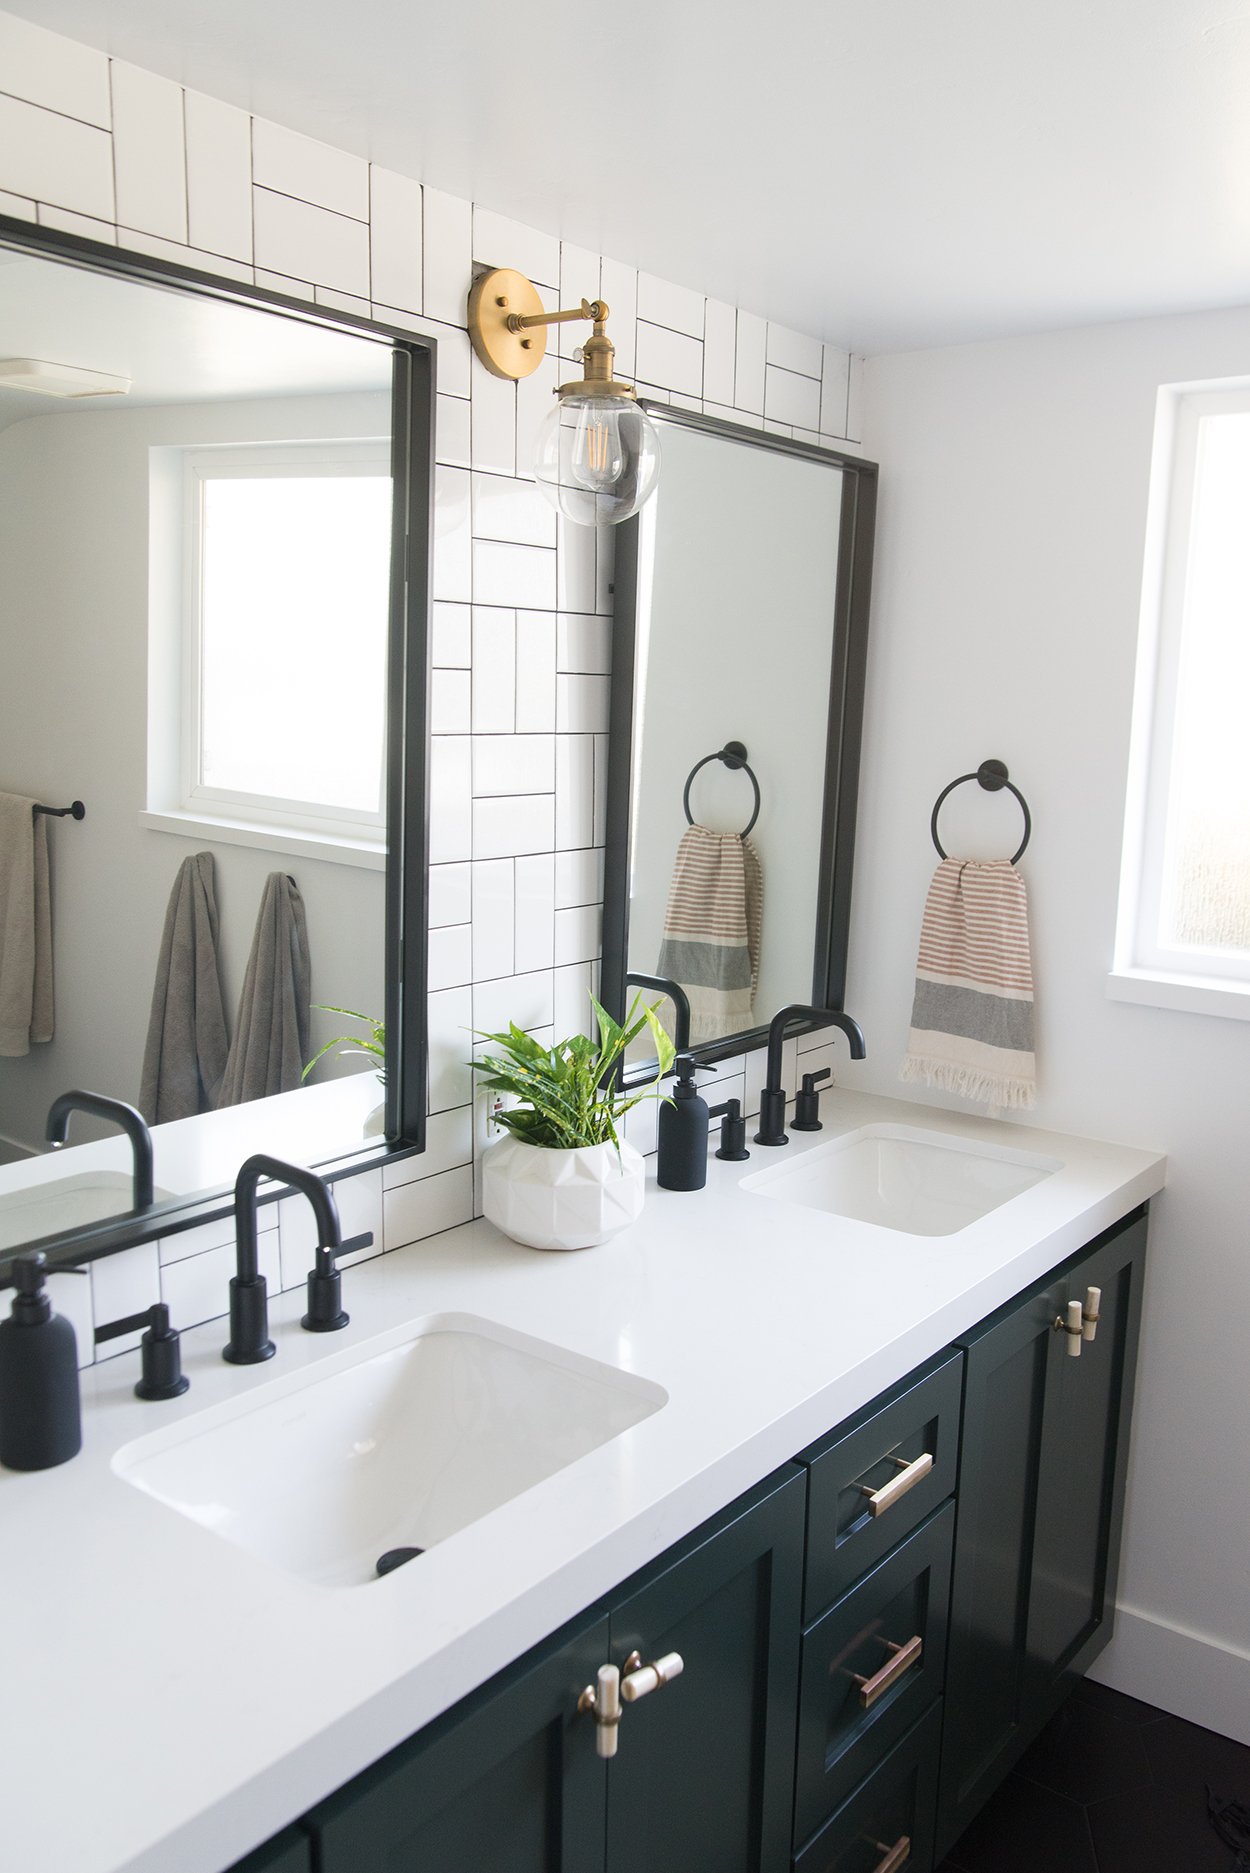 black bathroom vanity with a white counter top and black fixtures, black mirrors and a white tiled wall